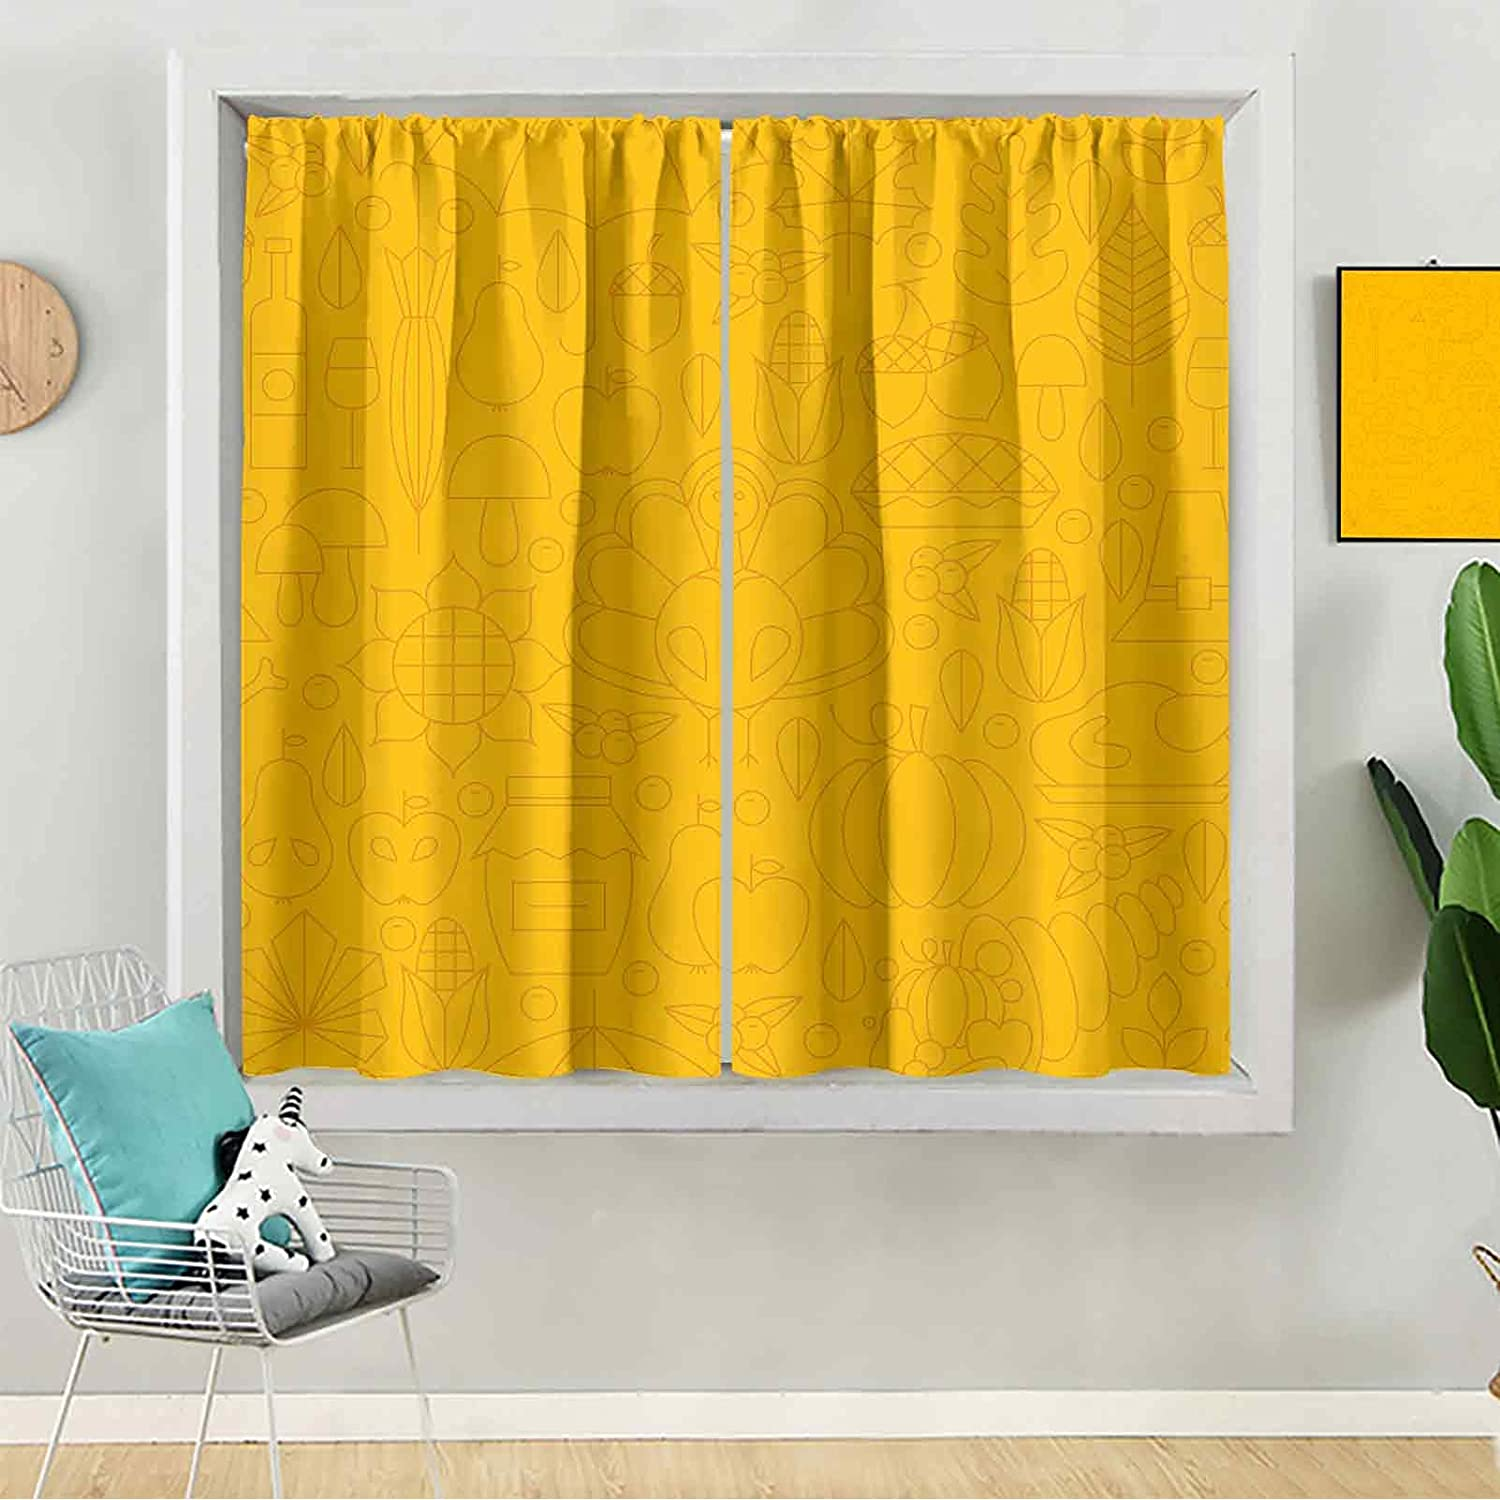 Blackout 5 ☆ popular Curtains Thin Cash special price Thanksgiving Holiday Dinner Line Seamles